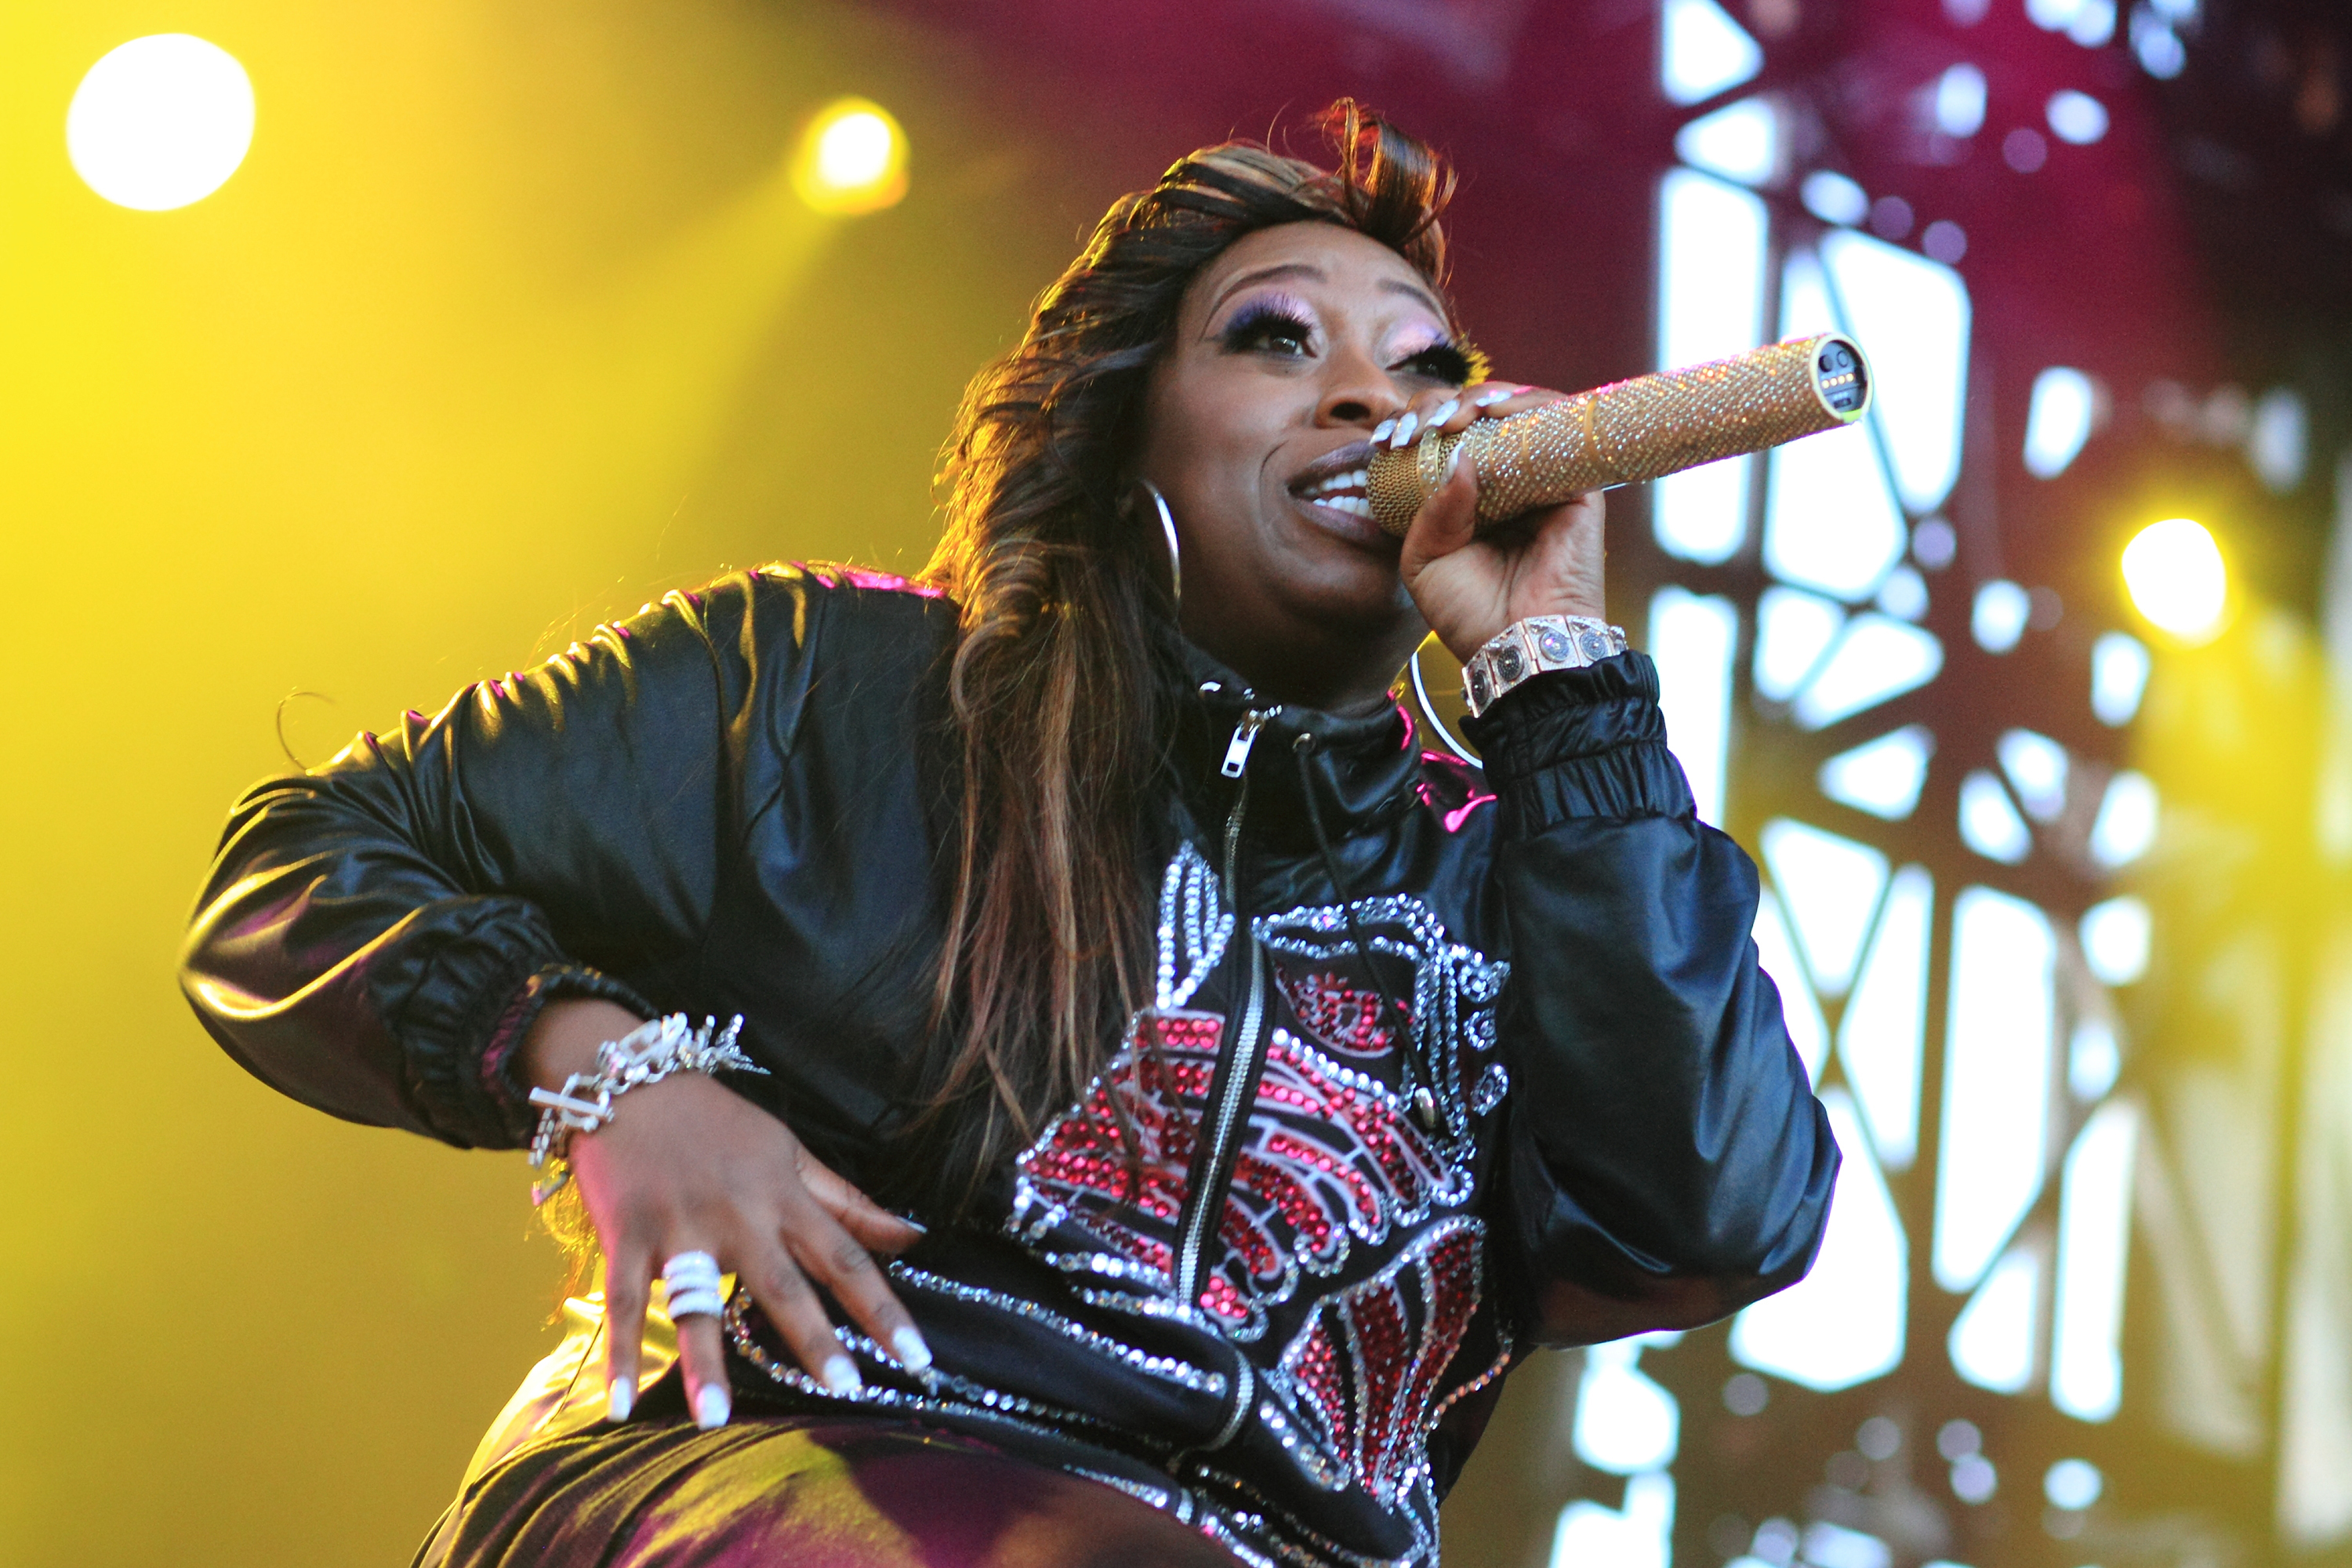 Missy Elliot Parklife Music Festival at Moore Park Sydney, Australia - 03.10.10  Featuring: Missy Elliot Where: Australia When: 03 Oct 2010 Credit: WENN